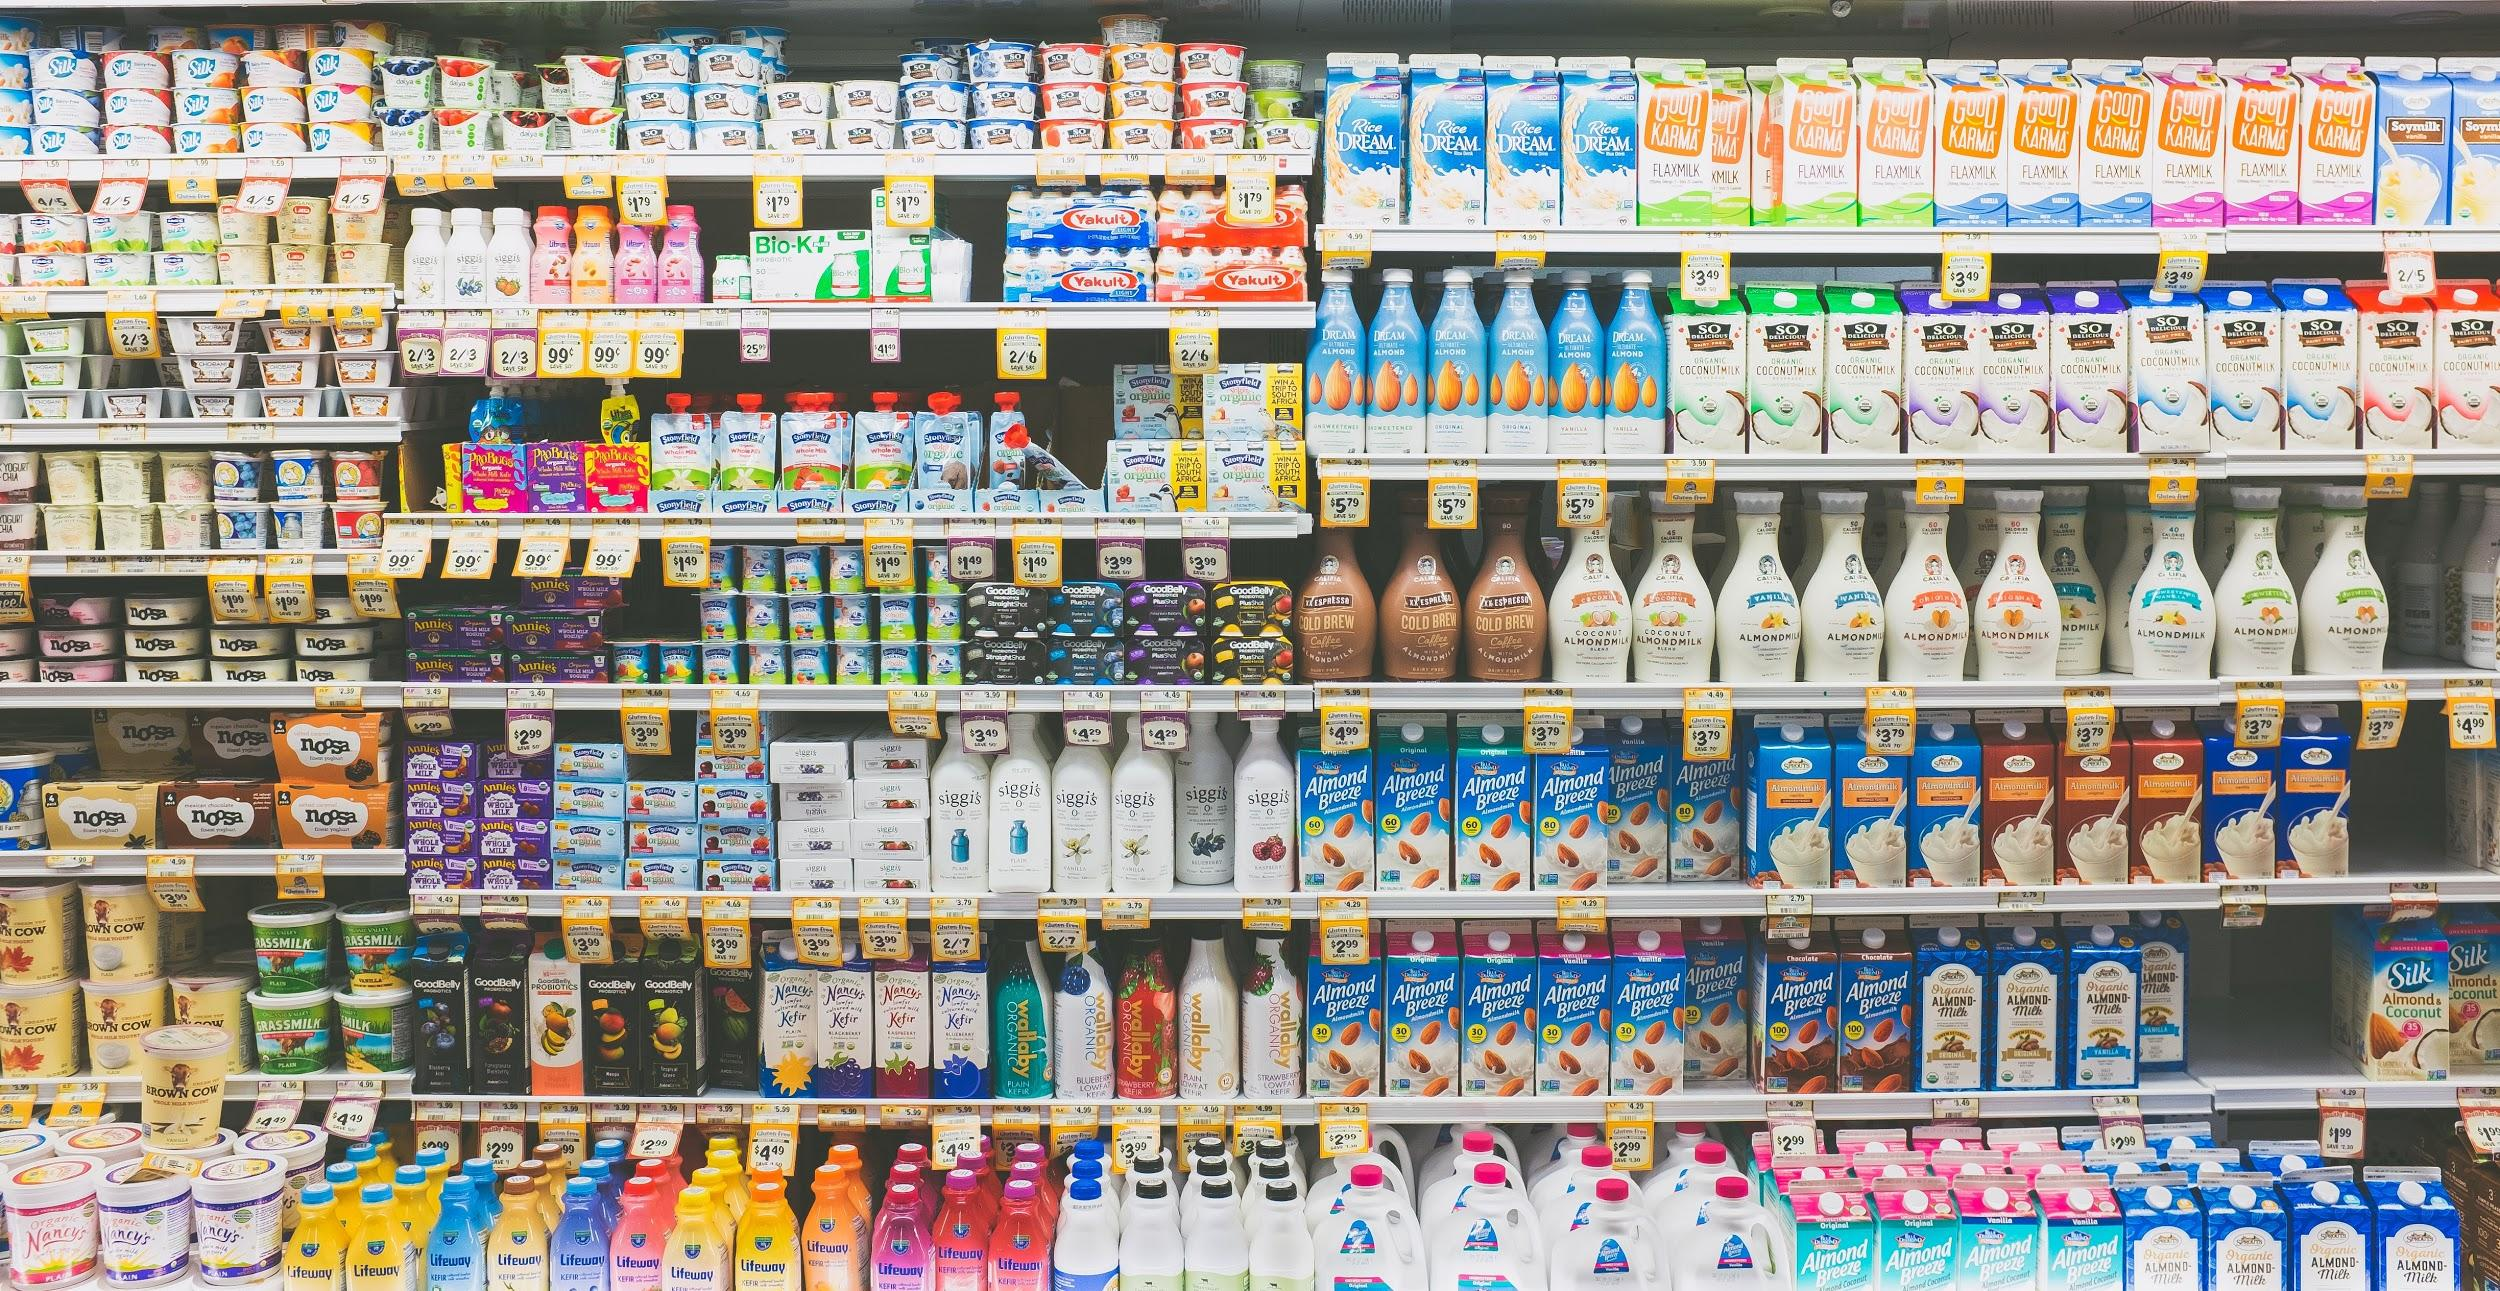 photo of a refrigerated grocery case containing many choices of yogurt, kefir, milk, and plant-based beverage products.